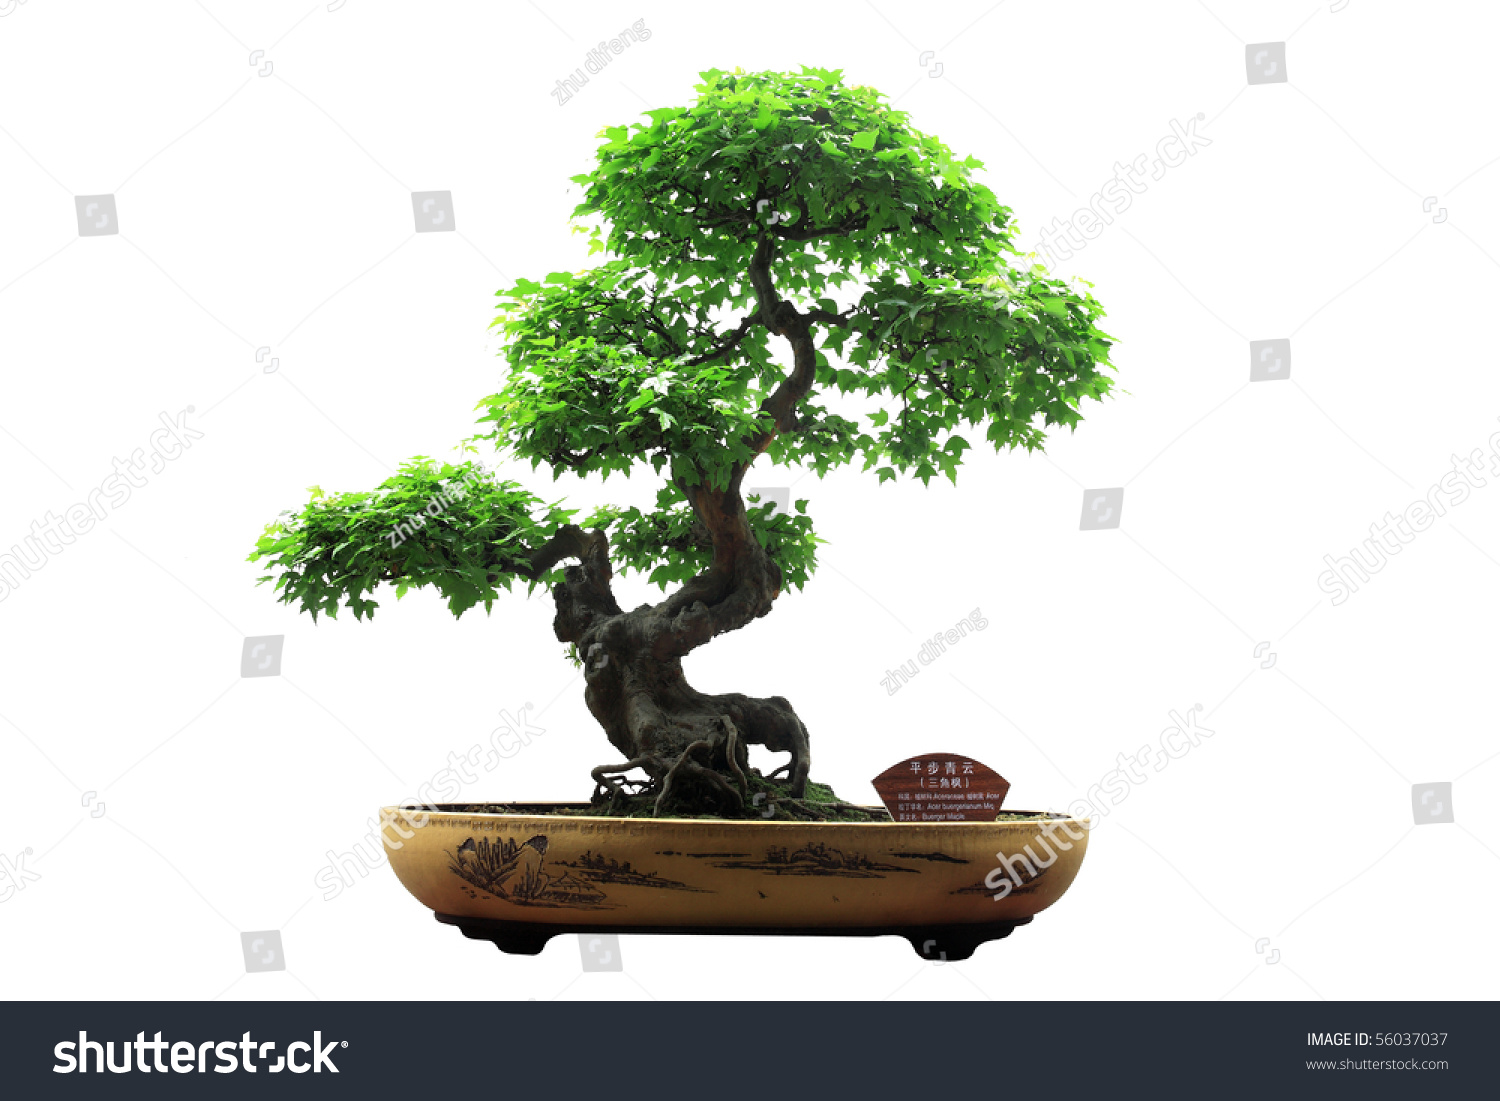 save to a lightbox bonsai tree